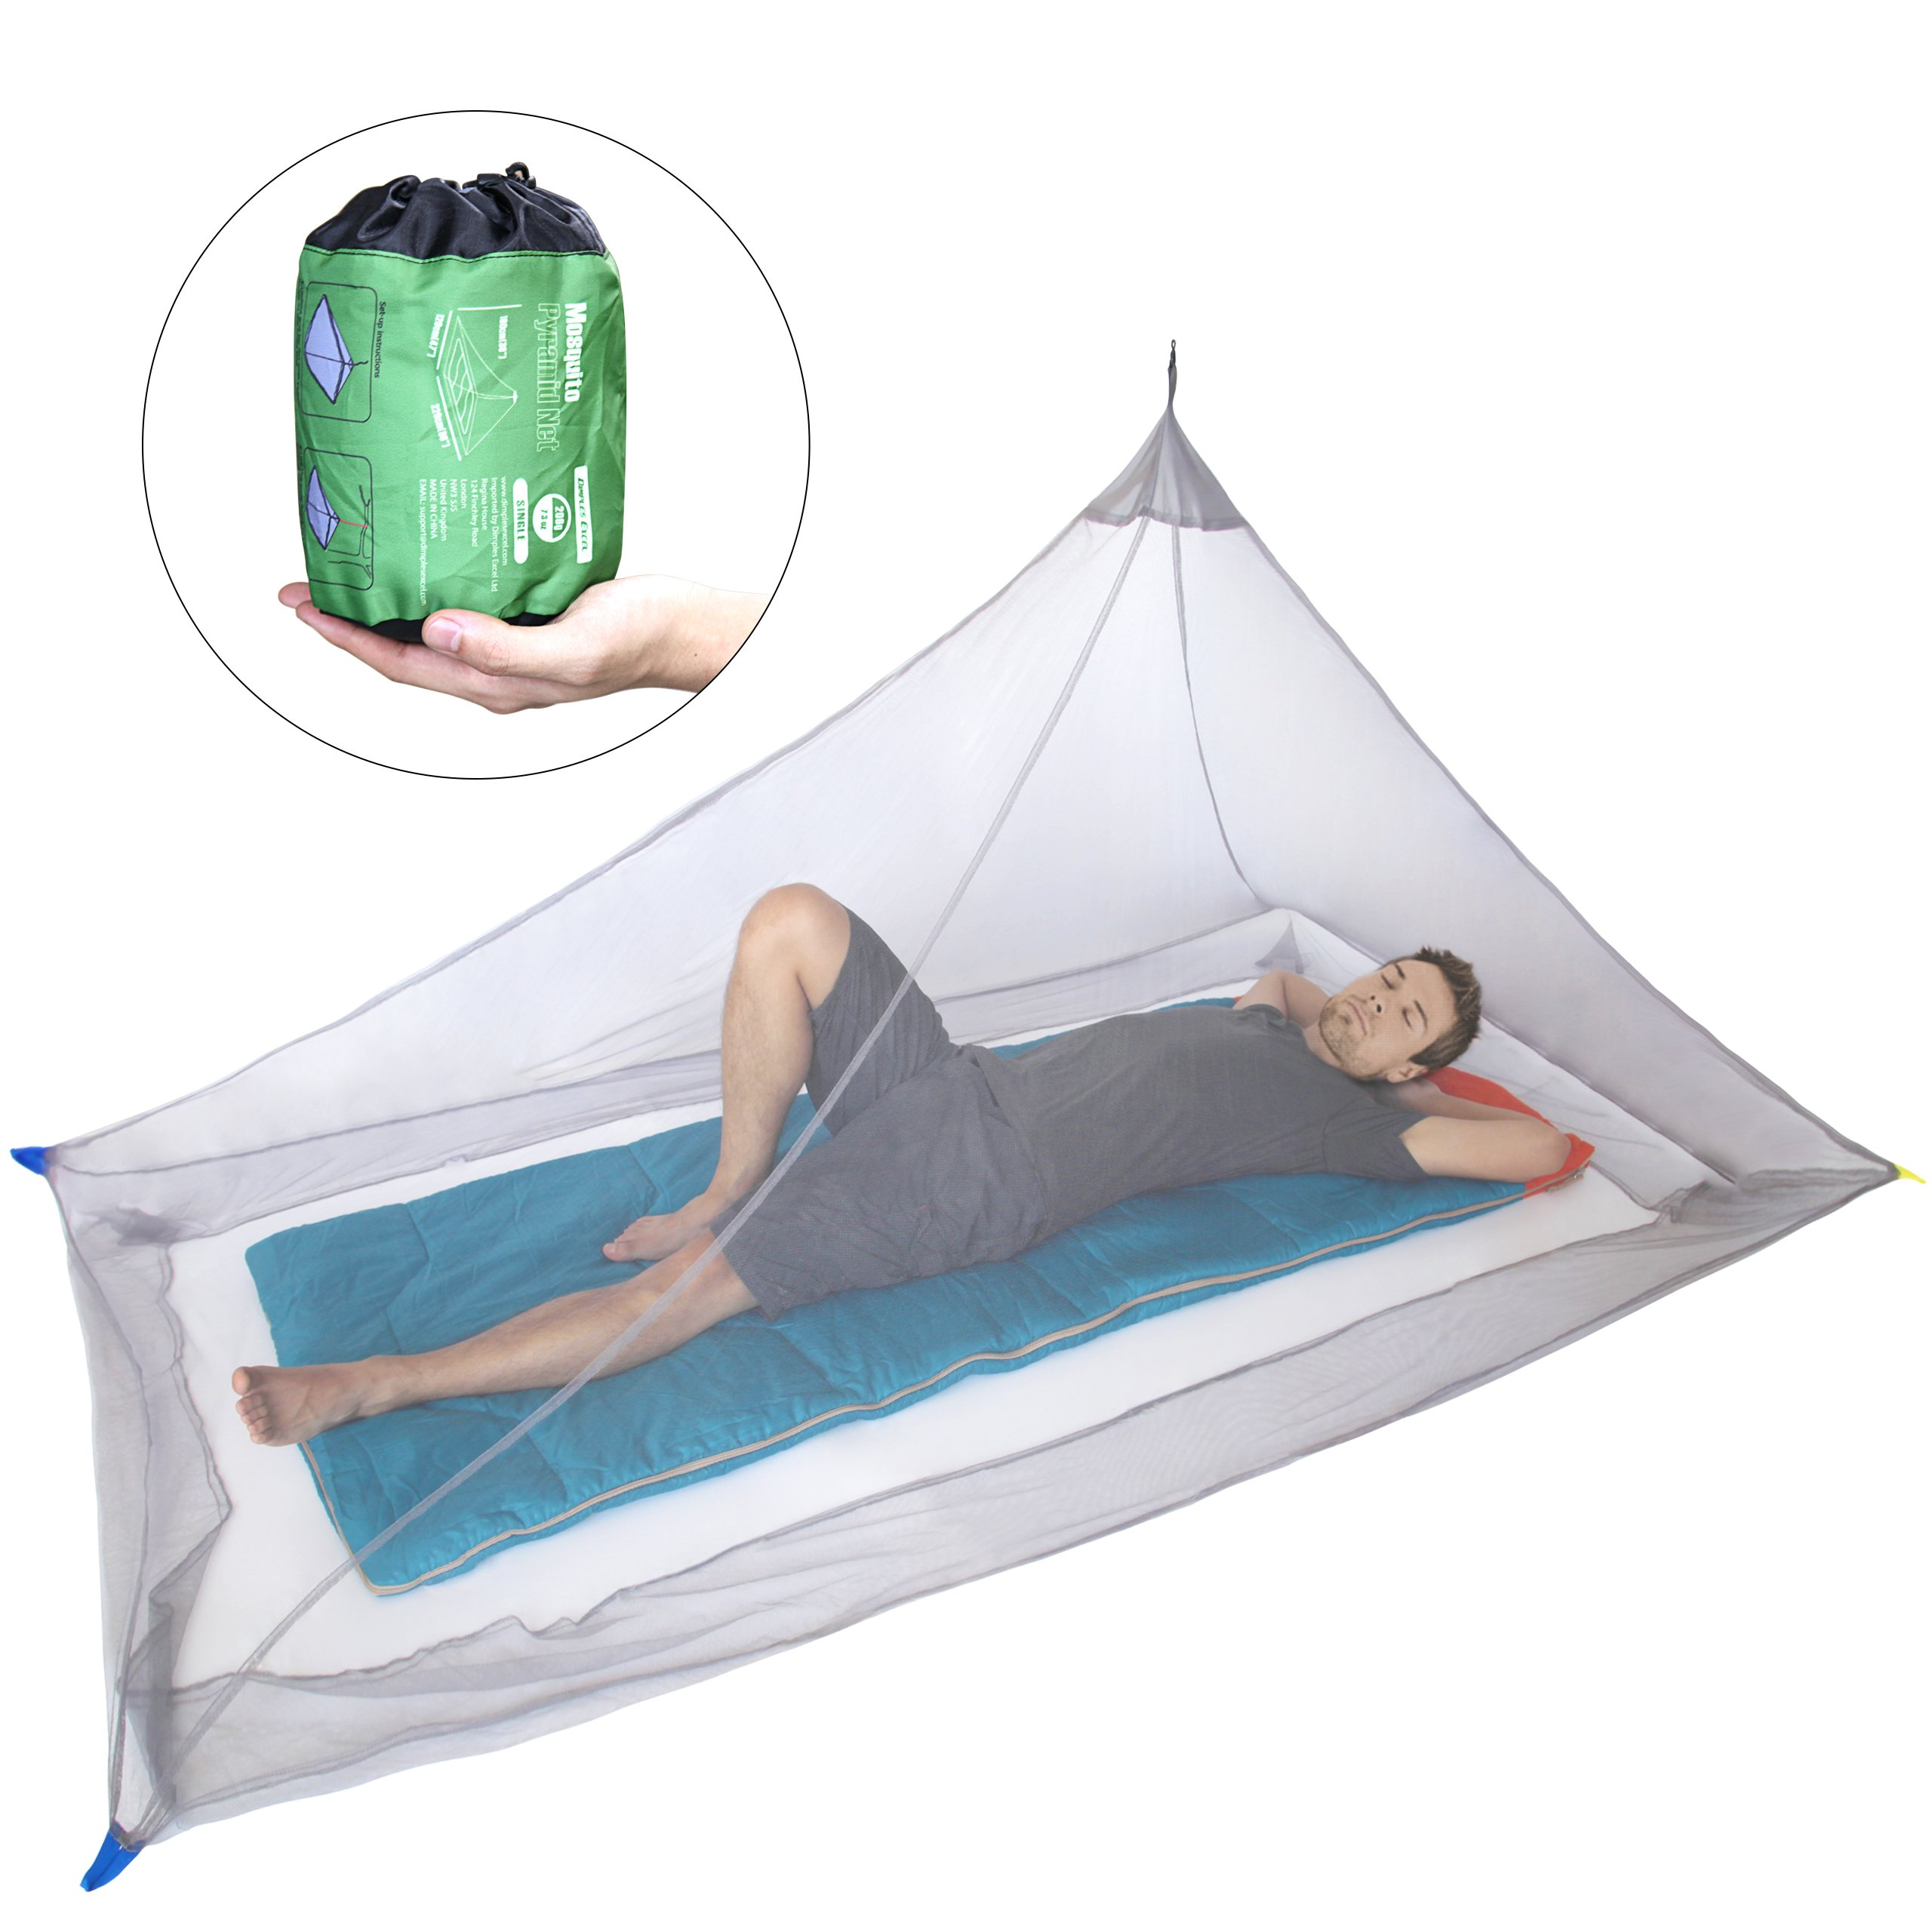 DIMPLES EXCEL Mosquito Net for Single Camping Bed - 250 Holes per Square Inch, Compact and Lightweight by DIMPLES EXCEL